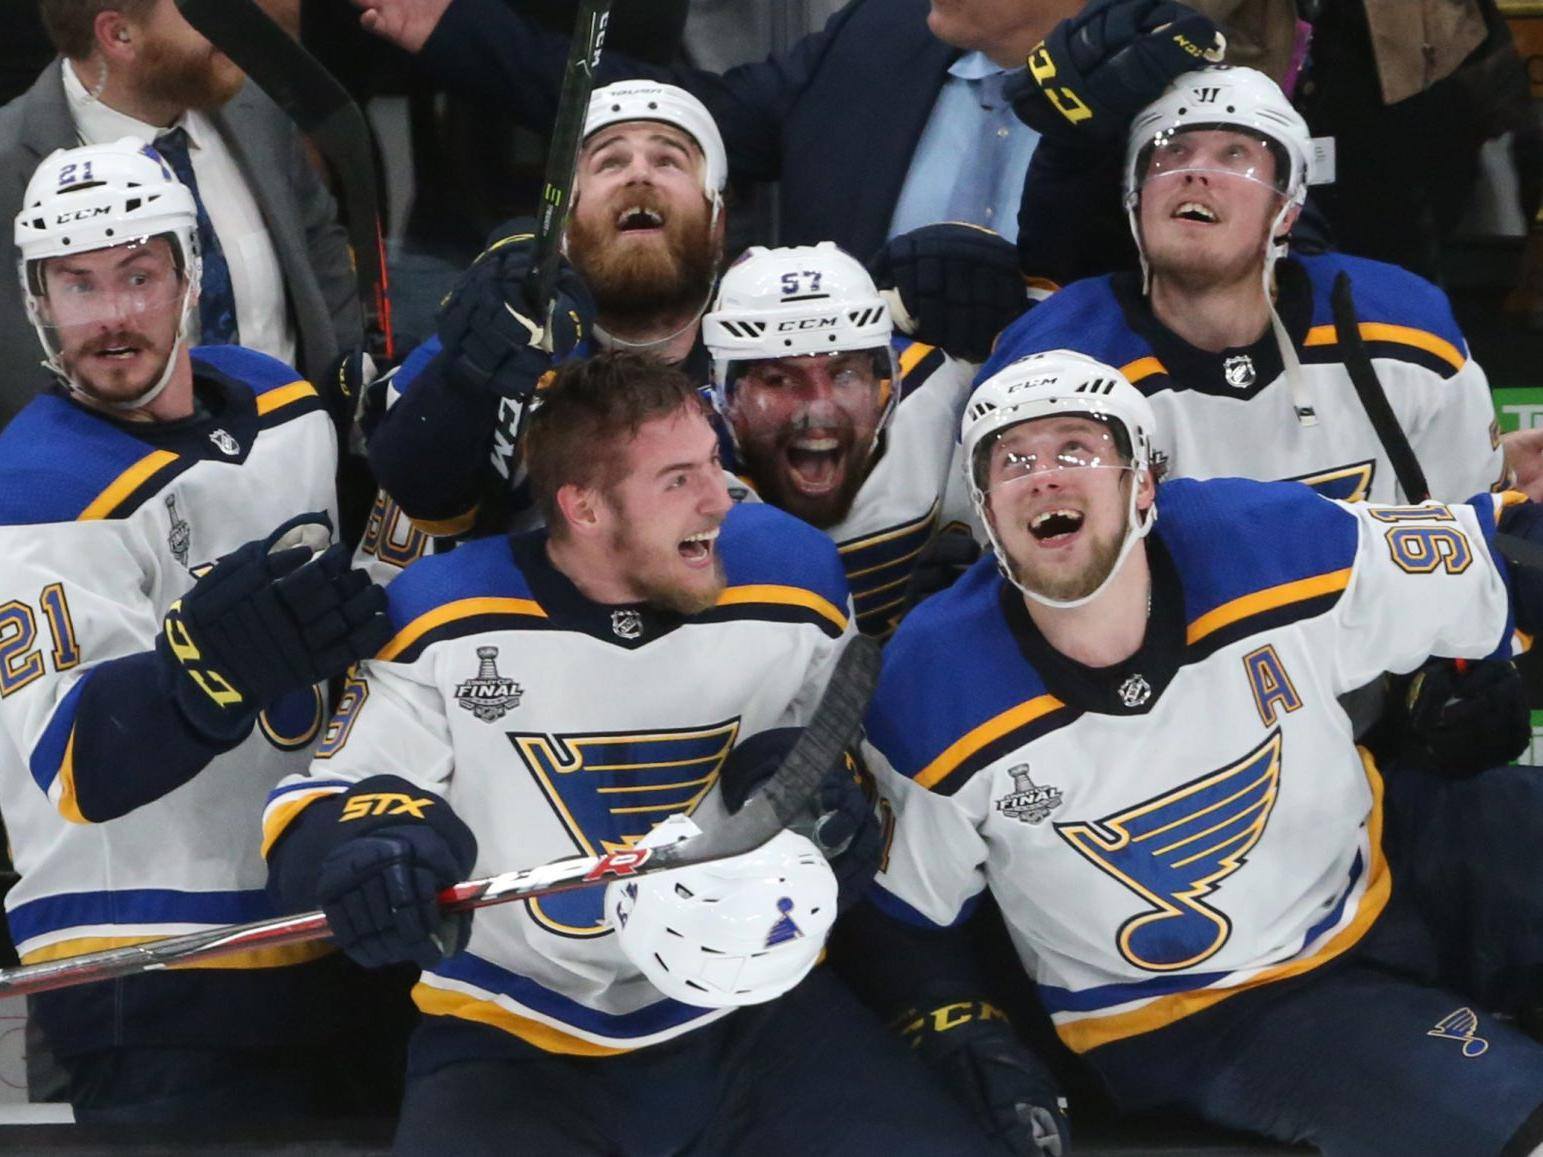 Reliving That Cup Crazy Night Local Stations To Re Air Blues Title Winning Game Exactly A Year Later St Louis Blues Stltoday Com